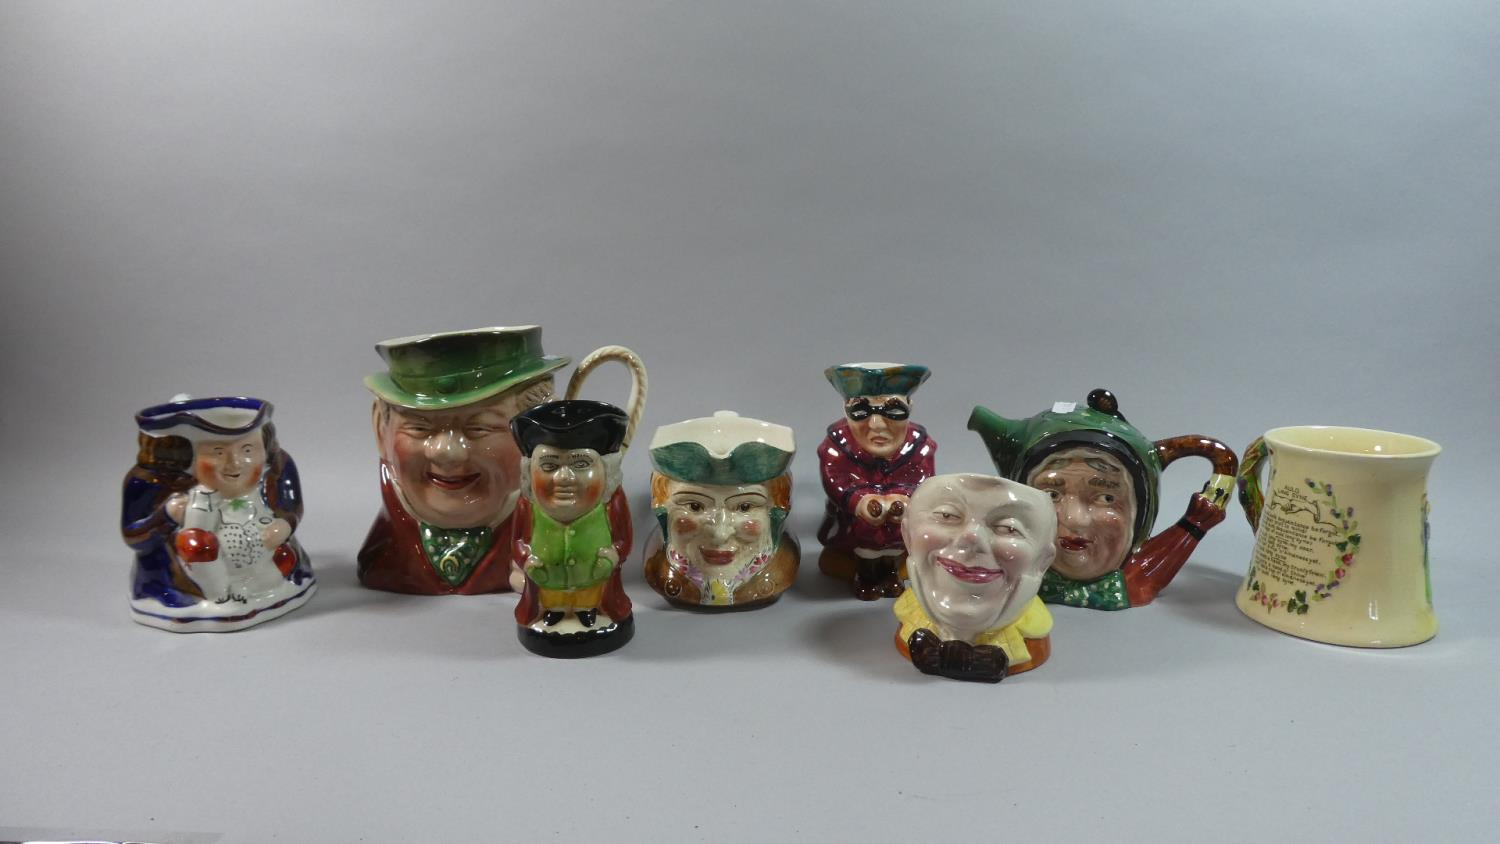 Lot 312 - A Collection of Beswick and Other Character Jugs, Musical Tankard, Beswick Teapot etc